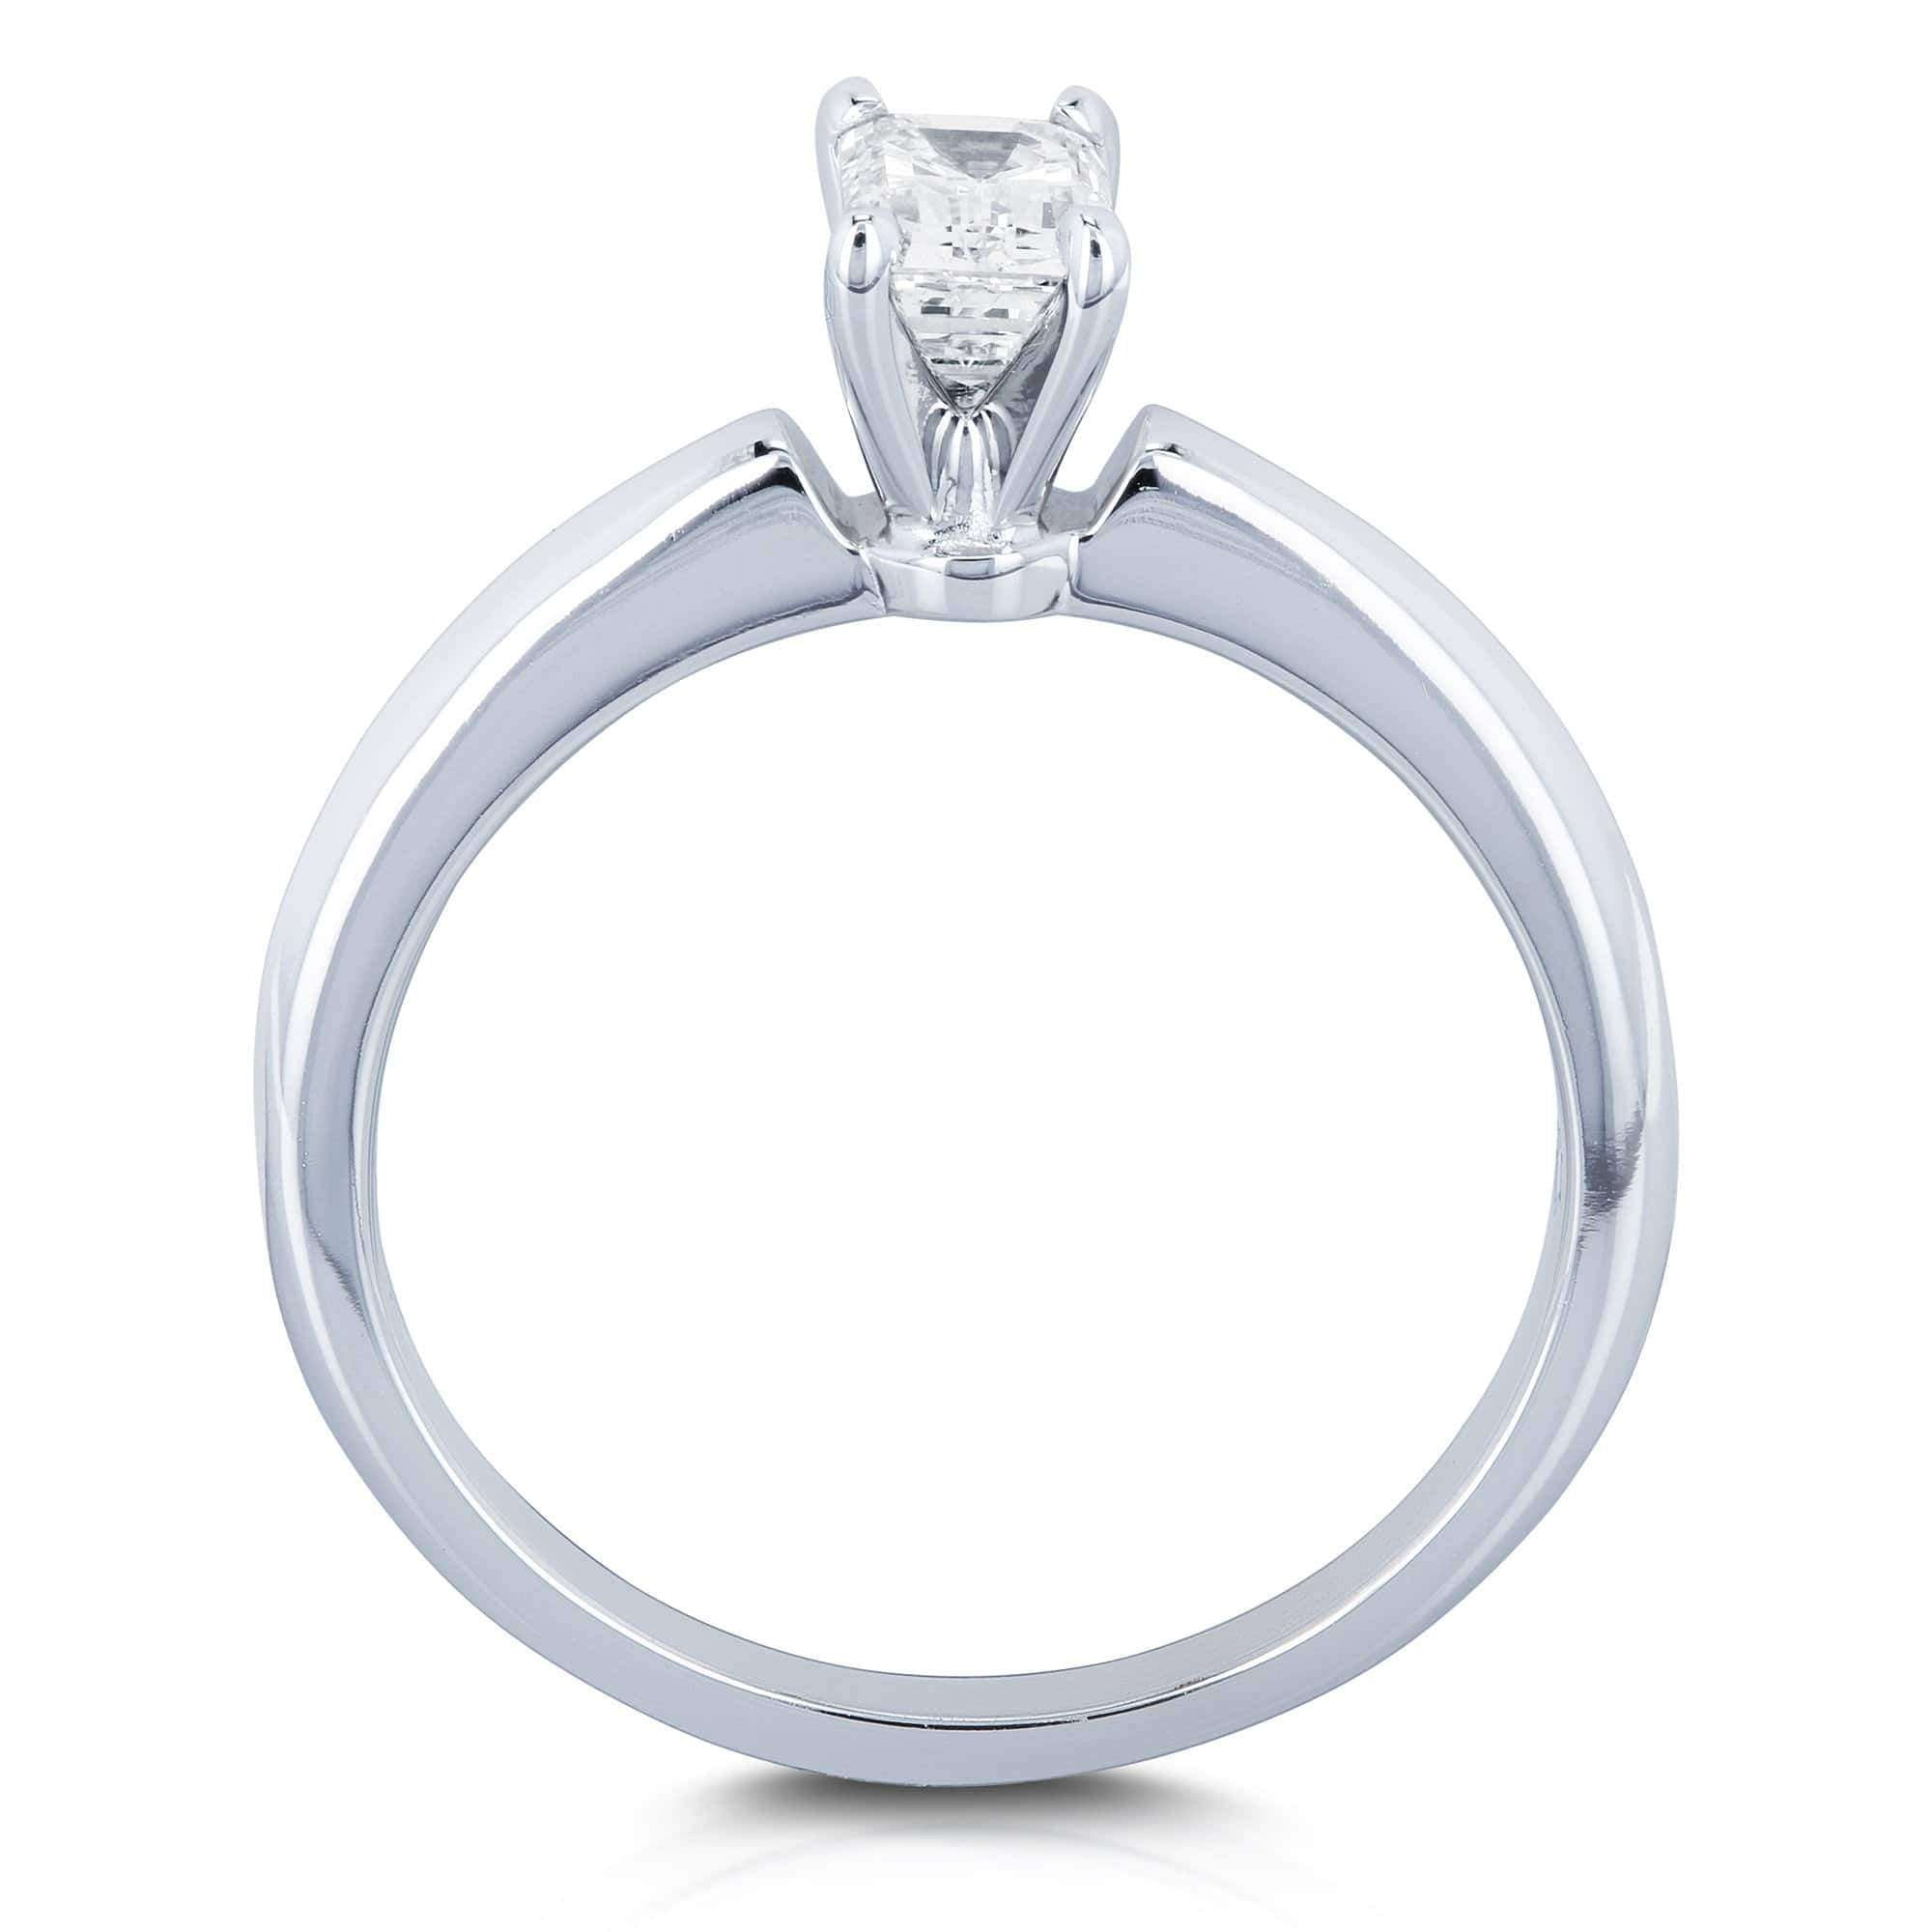 423732f3f98 Solitaire Emerald Cut 1/2 Carat Diamond Engagement Ring in 14k White G